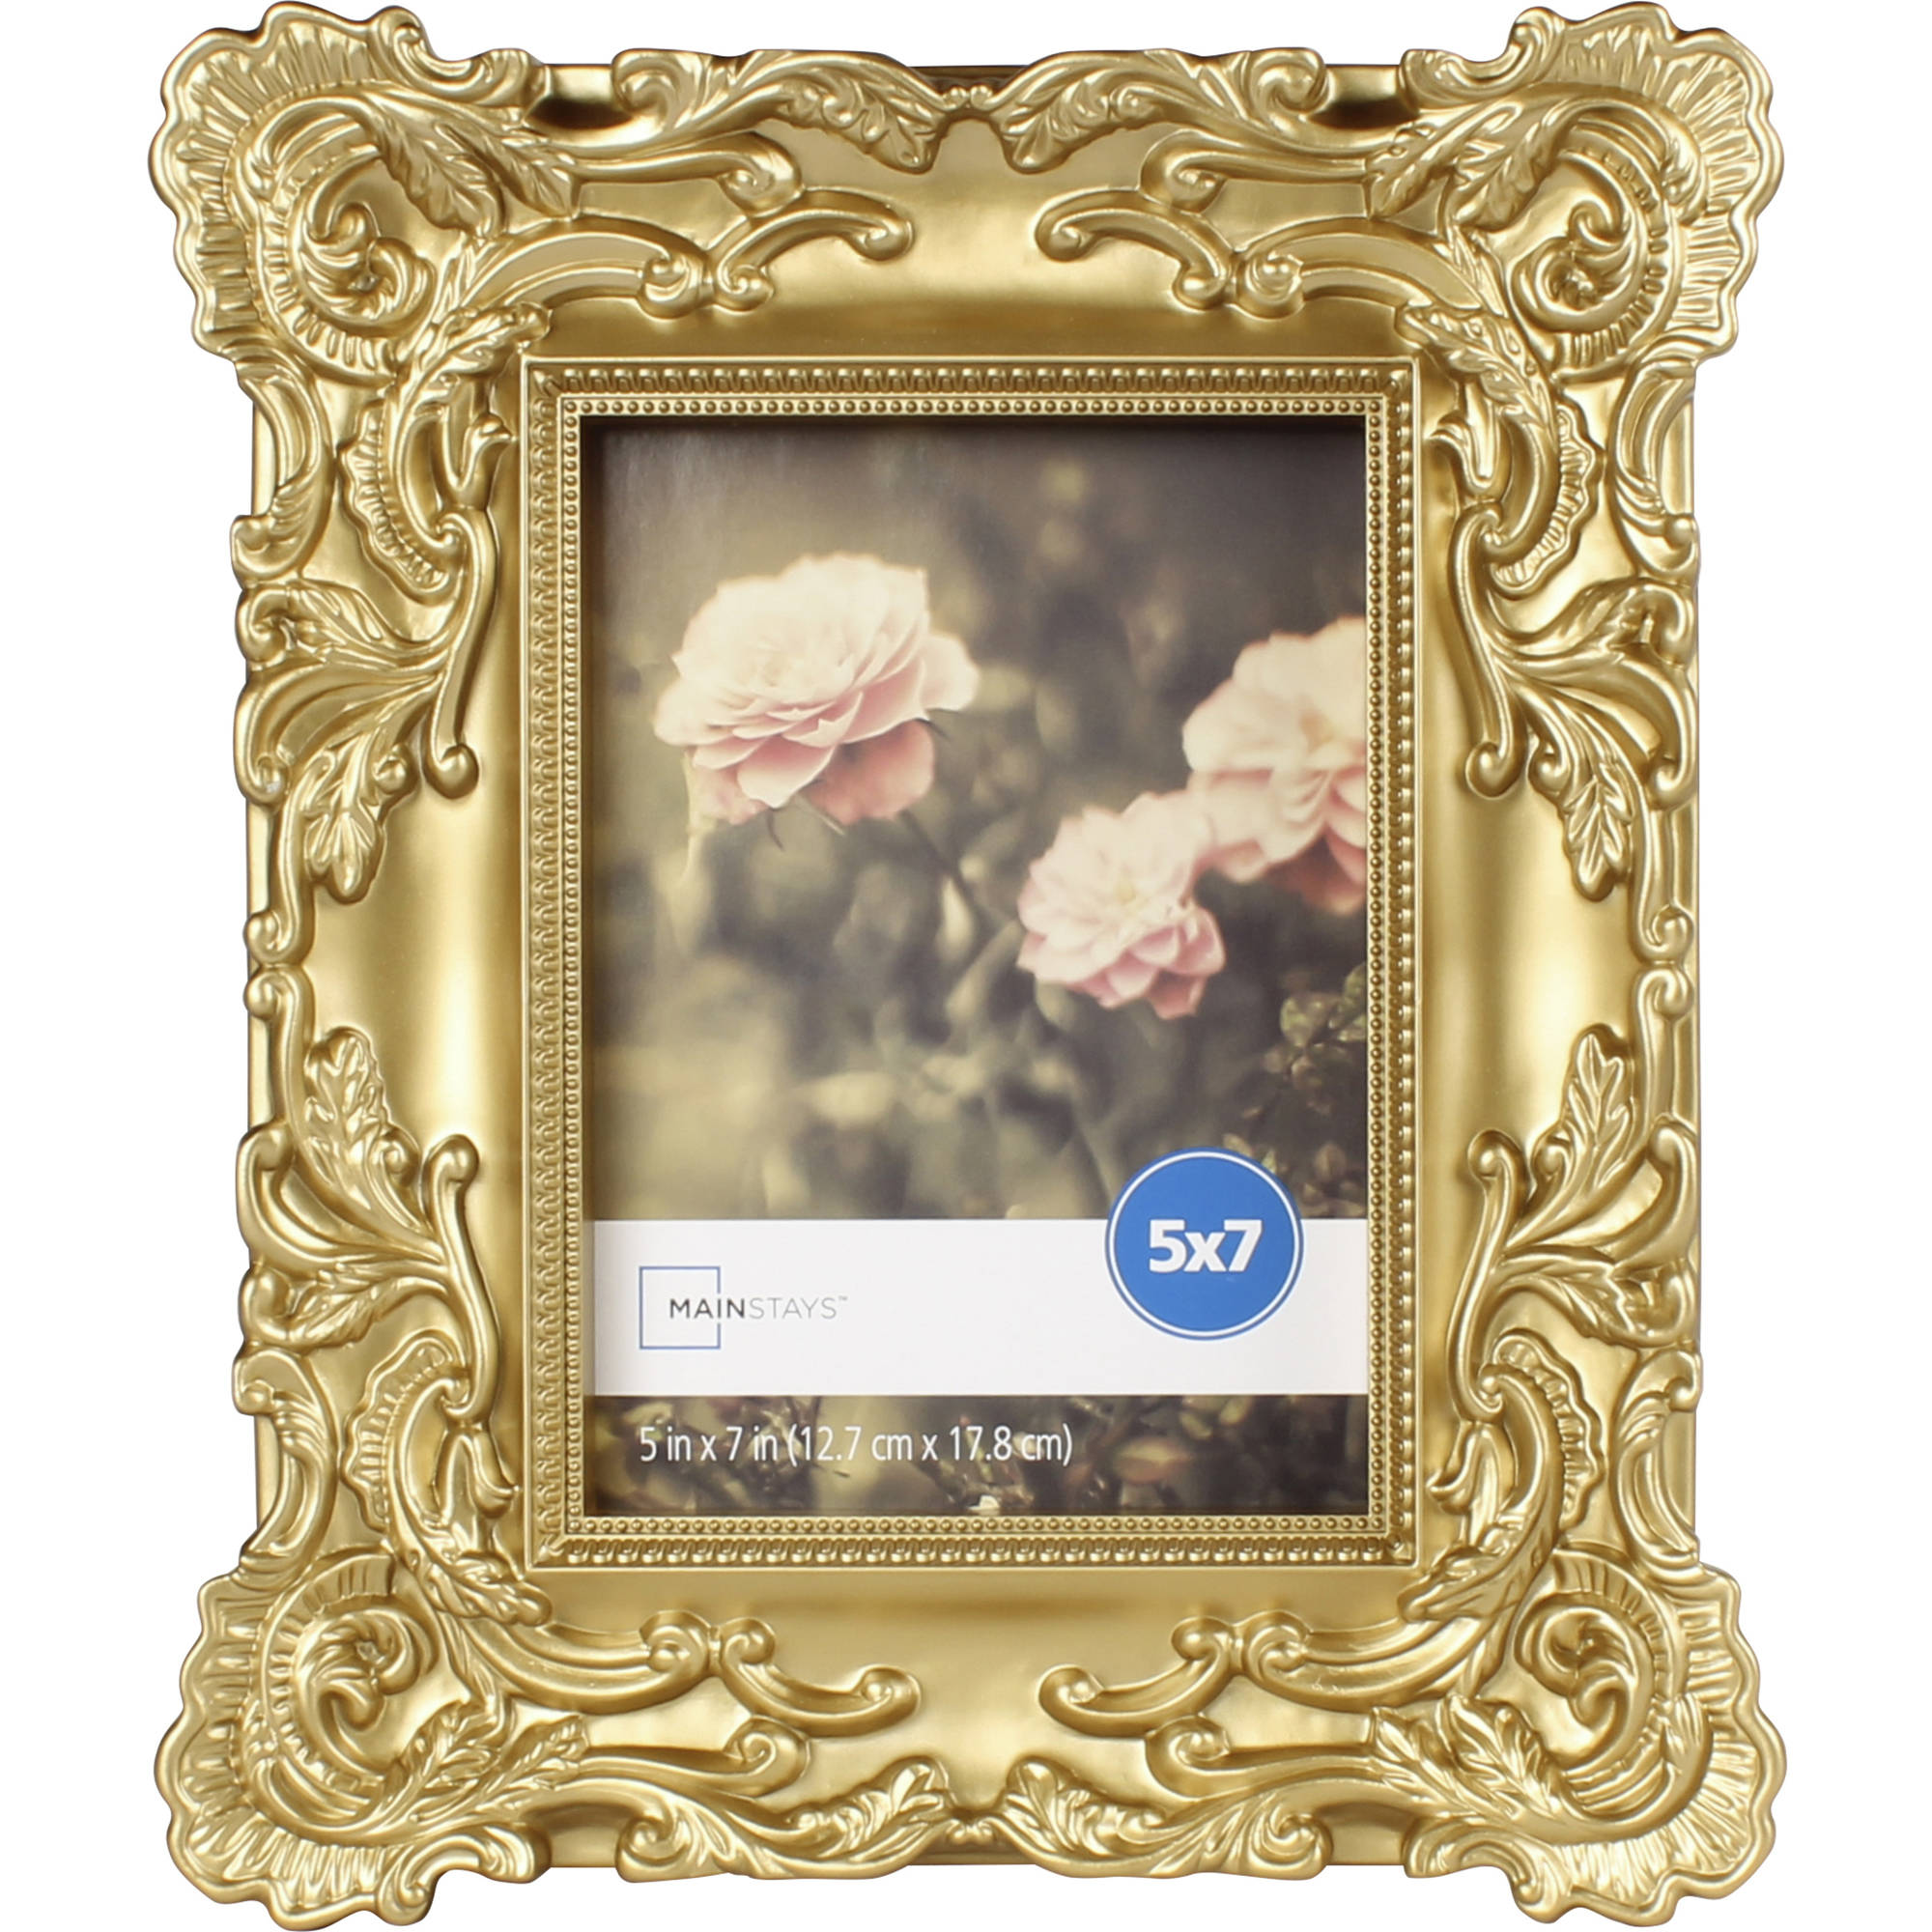 Mainstays 174 5x7 Baroque Picture Frame Gold Photo Family